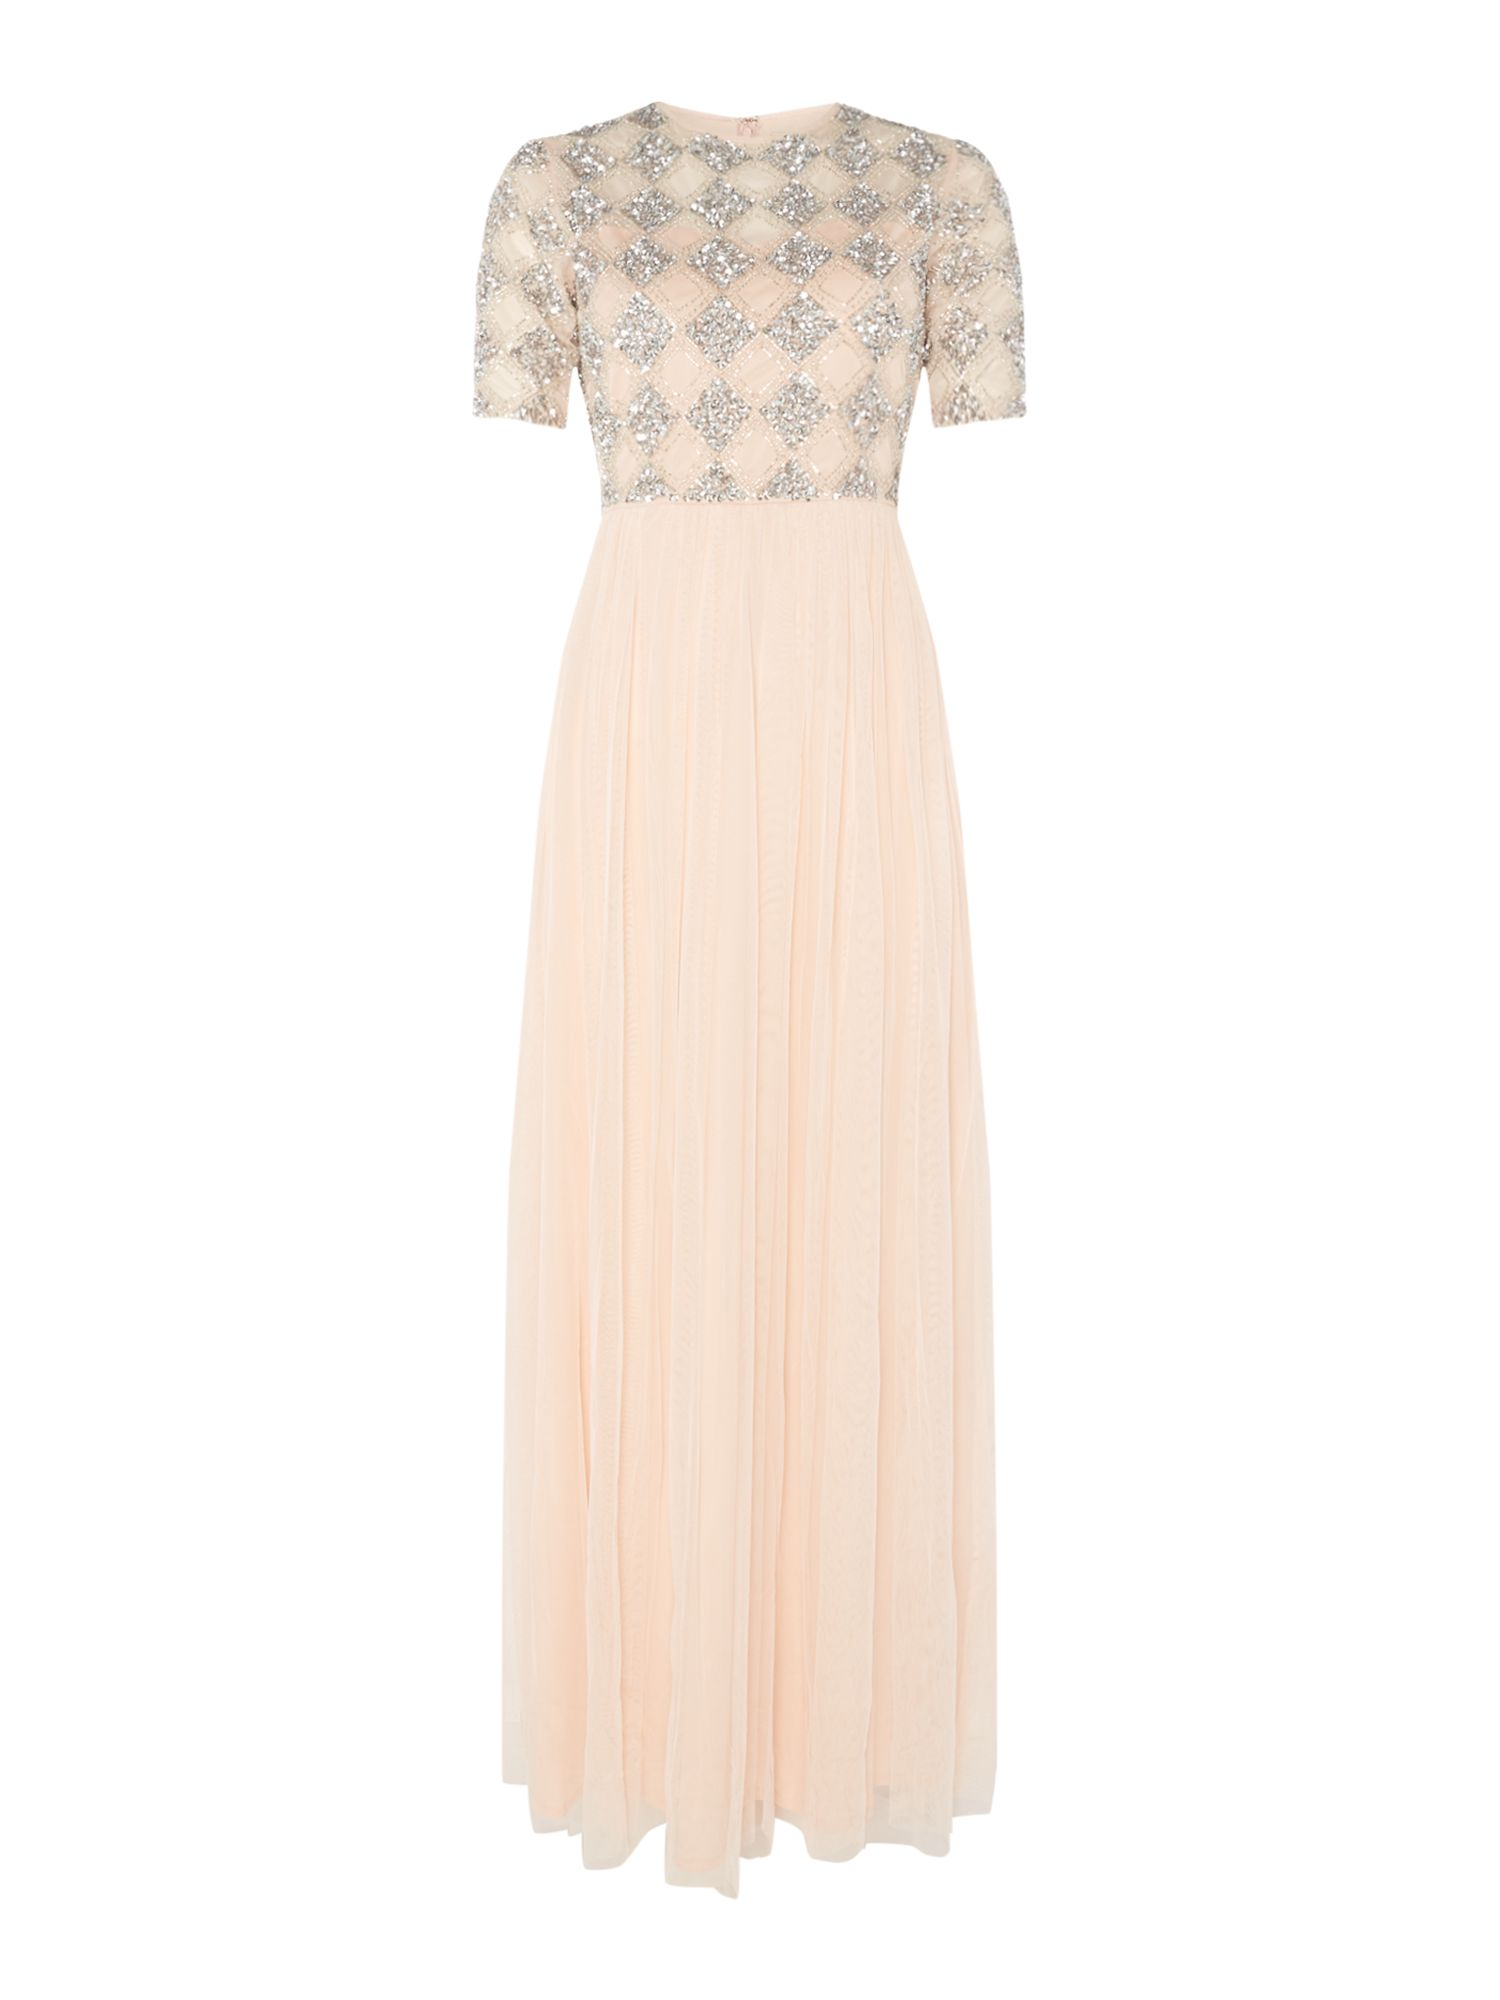 Sequin Short Sleeve Gown by Lace And Beads